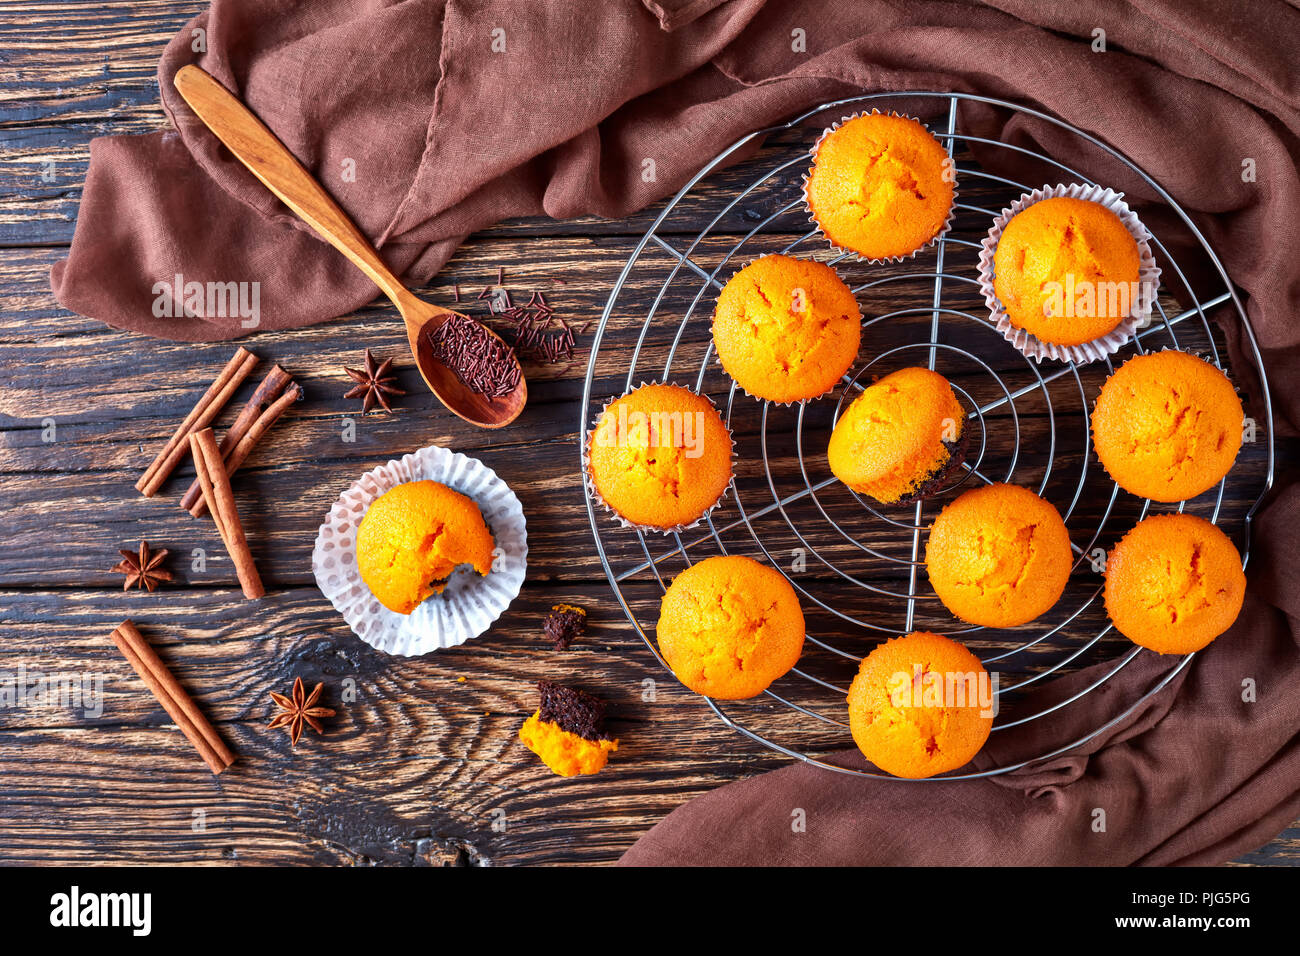 freshly baked homemade sweet pumpkin muffins  on a Round Stainless Steel Cake Cooling Rack on a rustic wooden table, delicious autumn dessert for hall - Stock Image